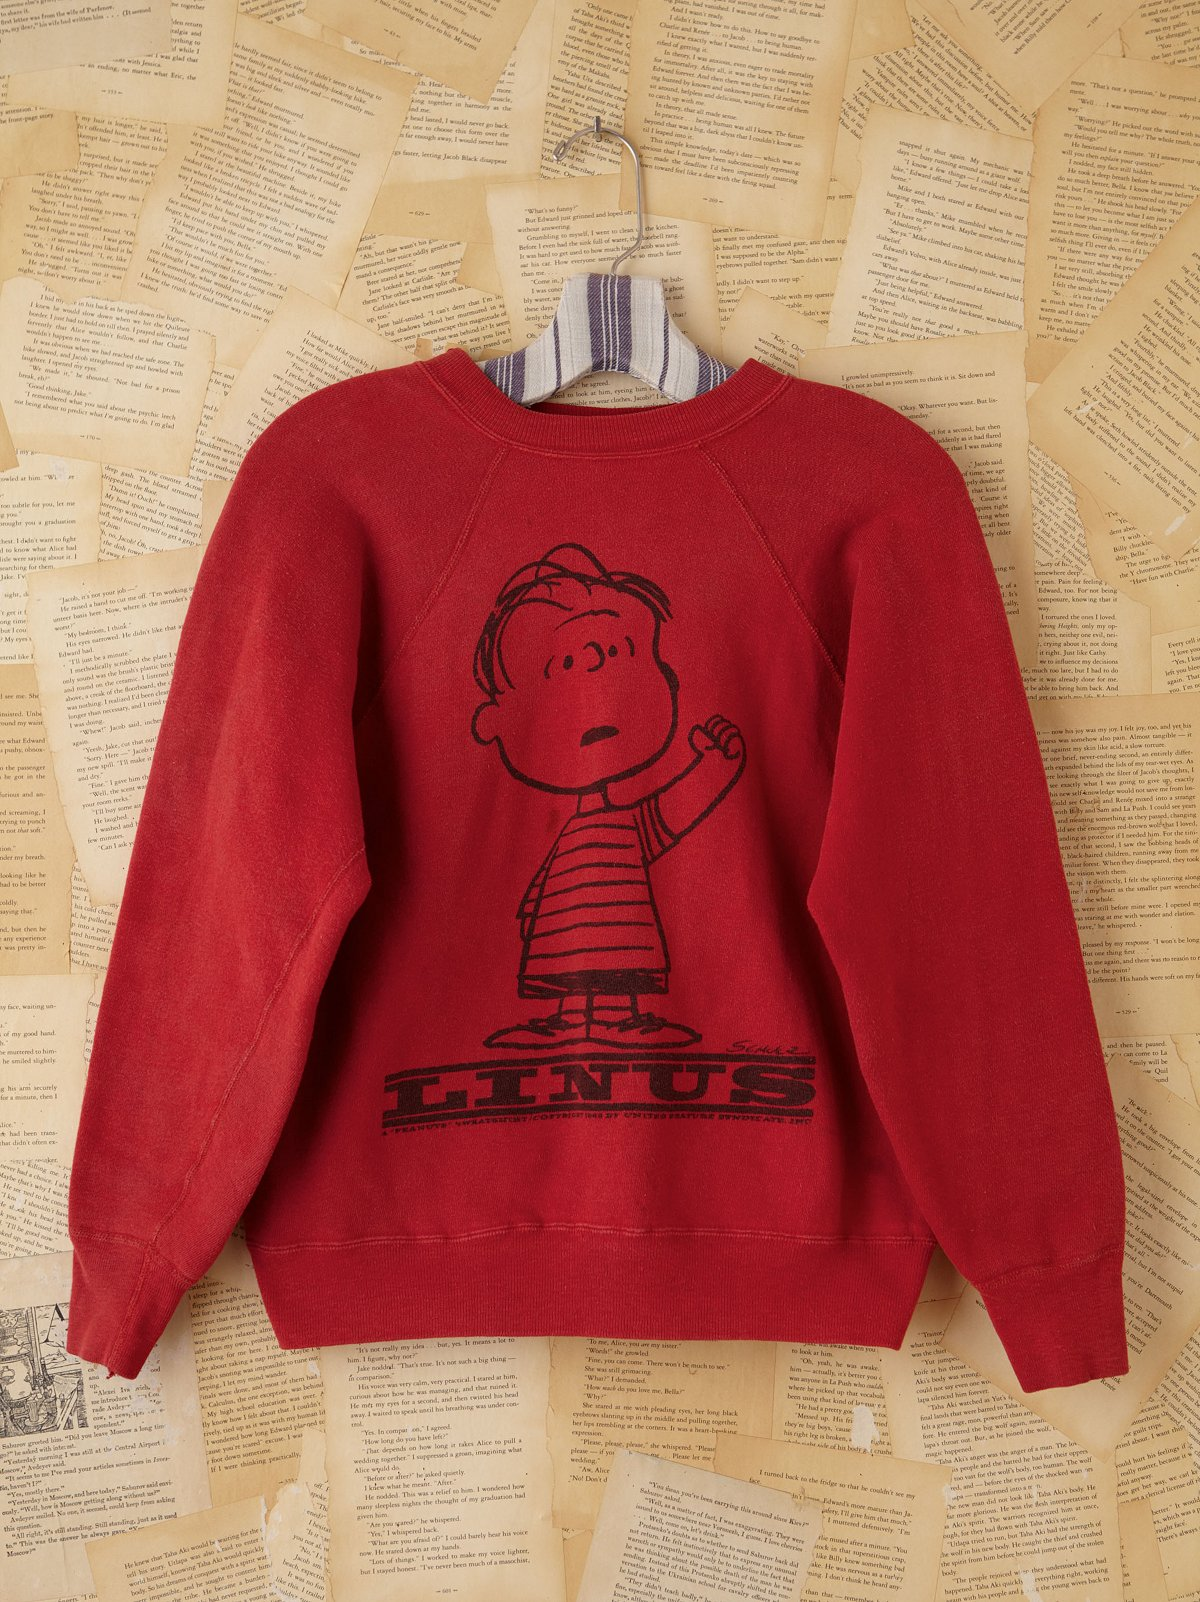 Vintage Red Snoopy Sweatshirt